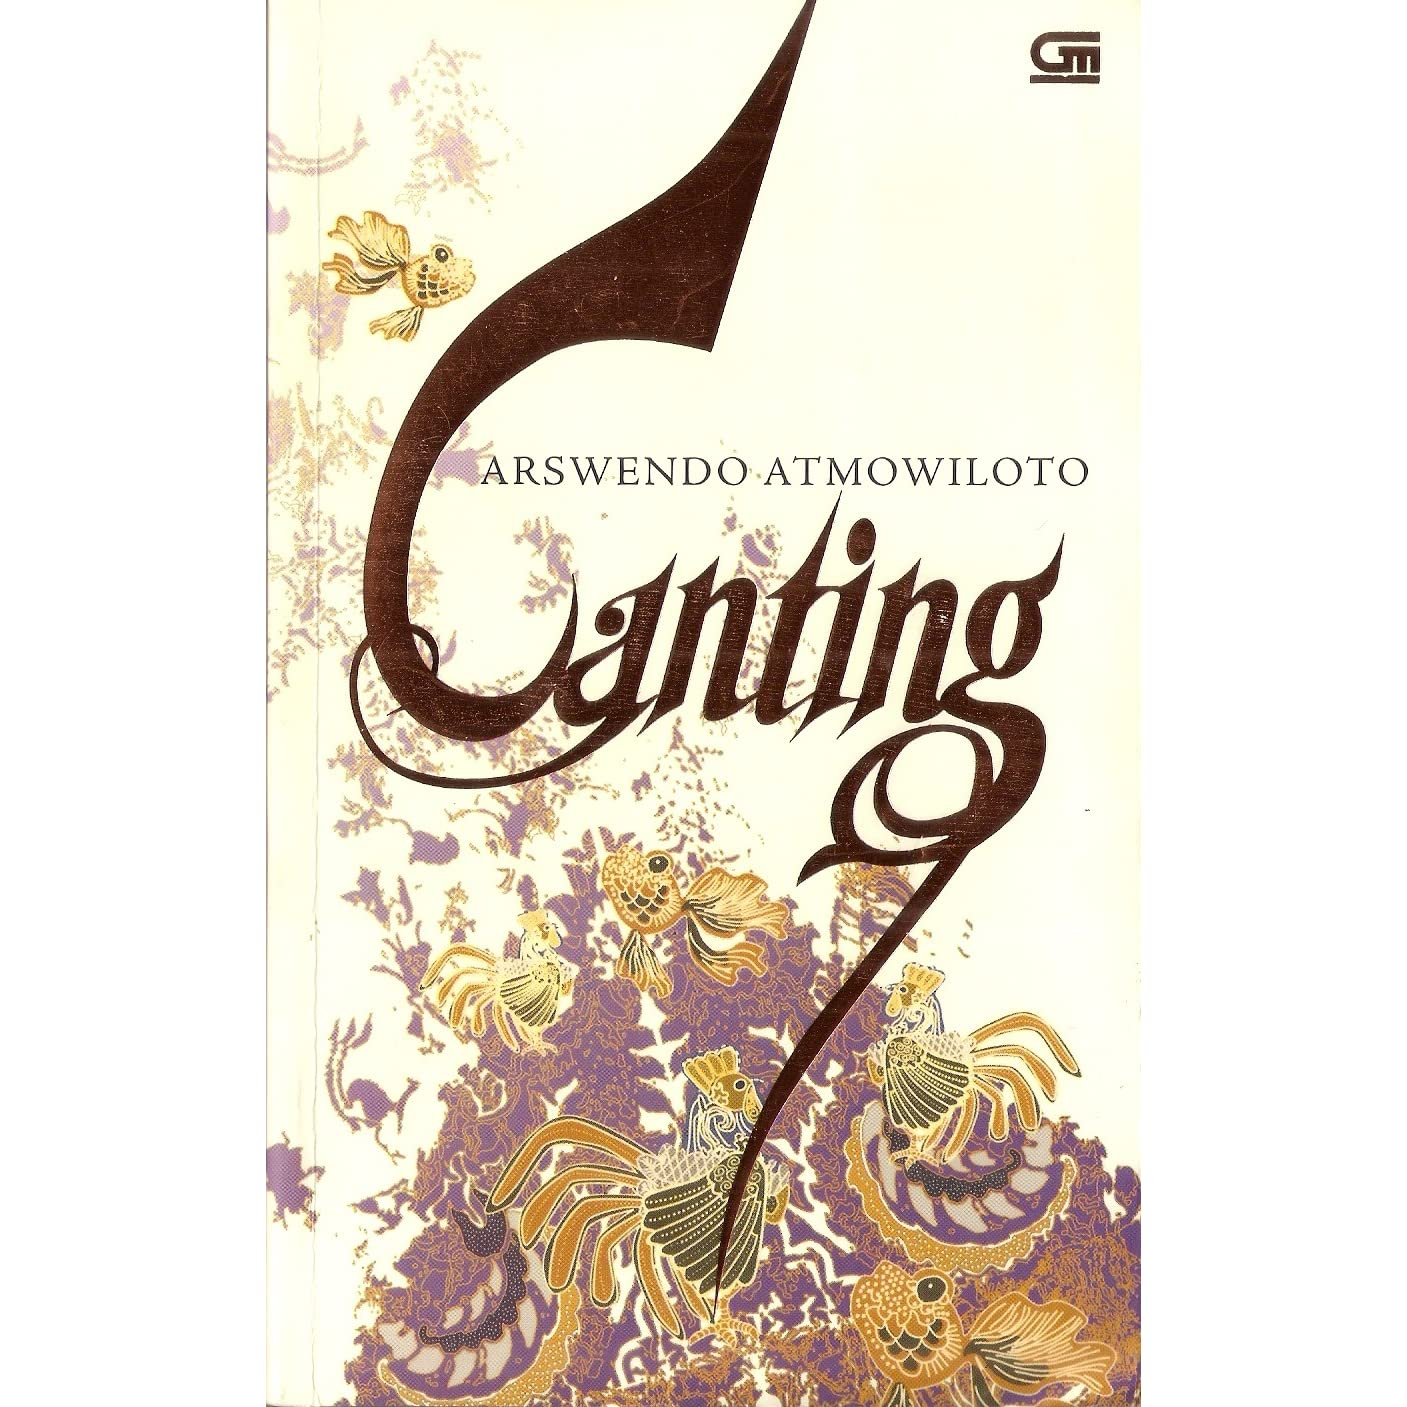 canting by arswendo atmowiloto